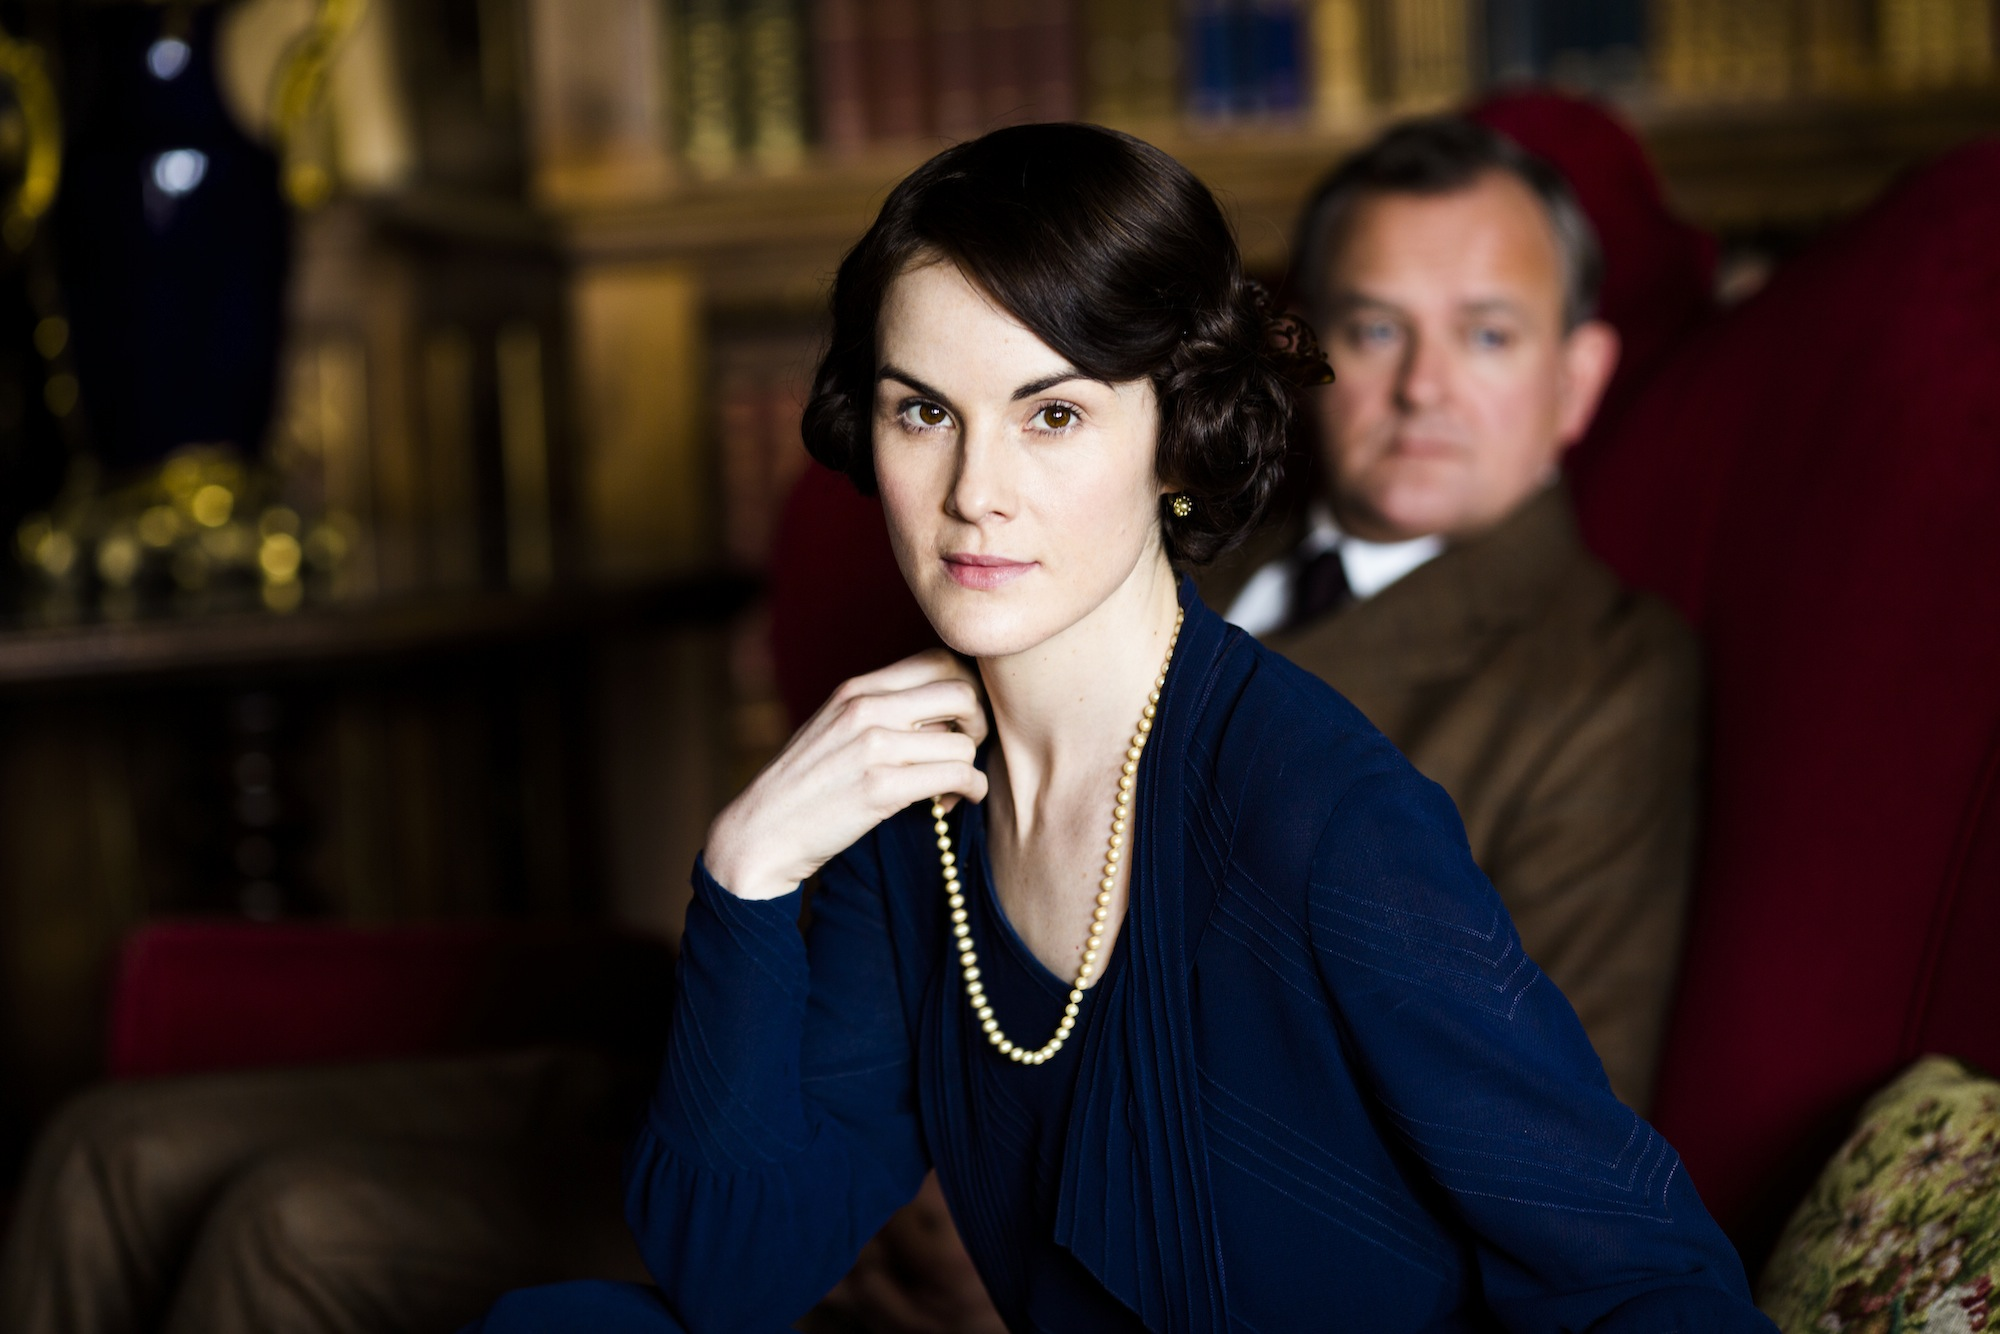 MICHELLE DOCKERY as Lady Mary Crawley and HUGH BONNEVILLE as Robert, Earl of Grantham.